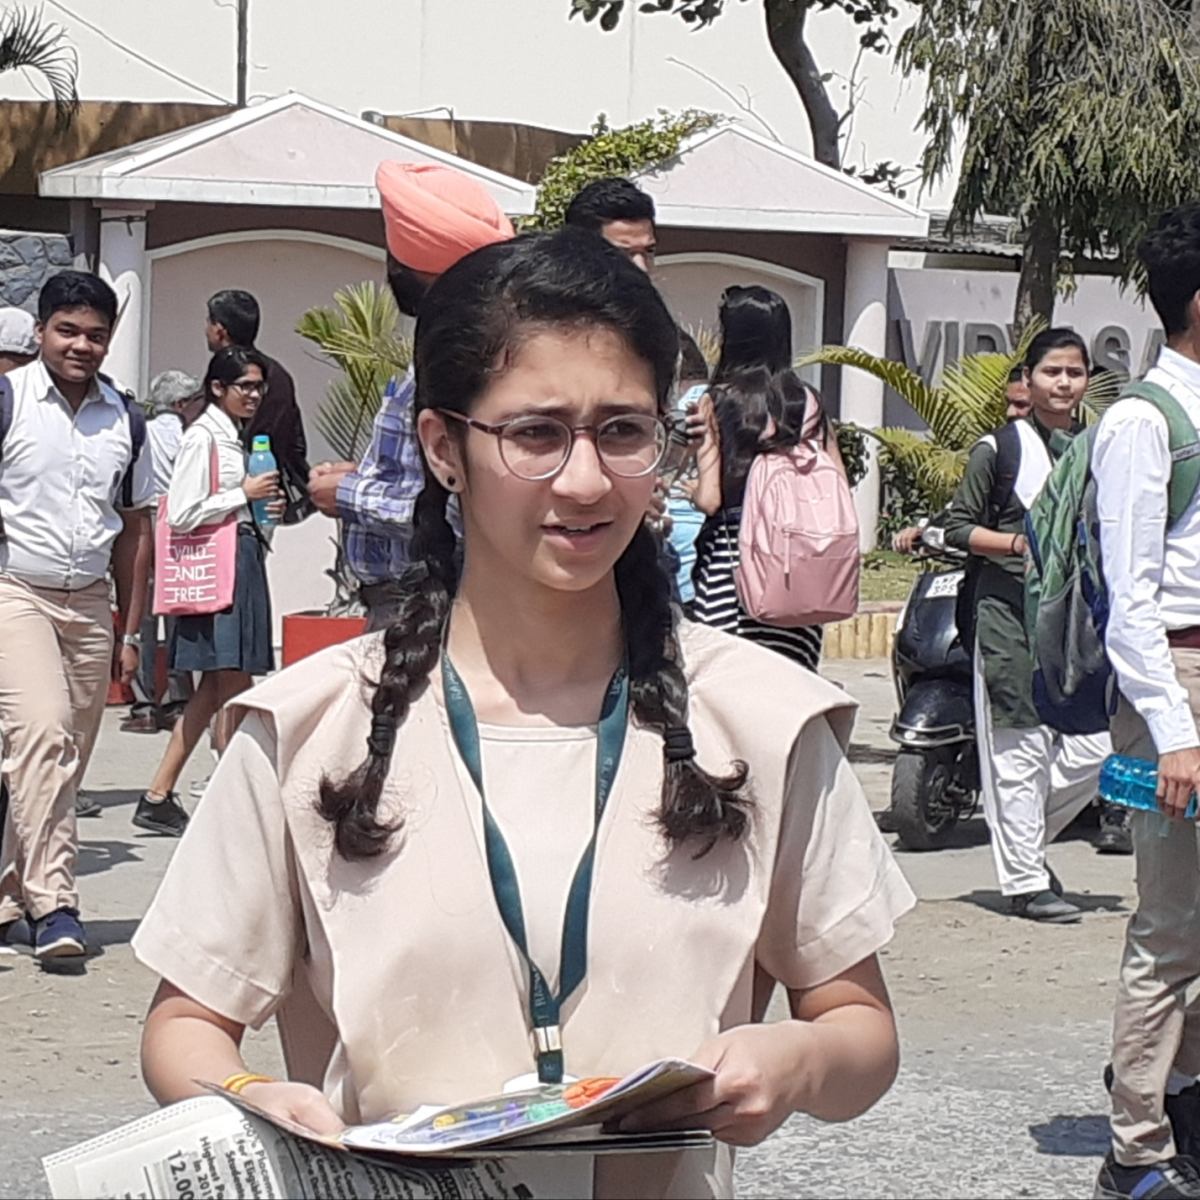 Madhya Pradesh: CBSE class 12 students stand with the decision to appear or opt-out of exams